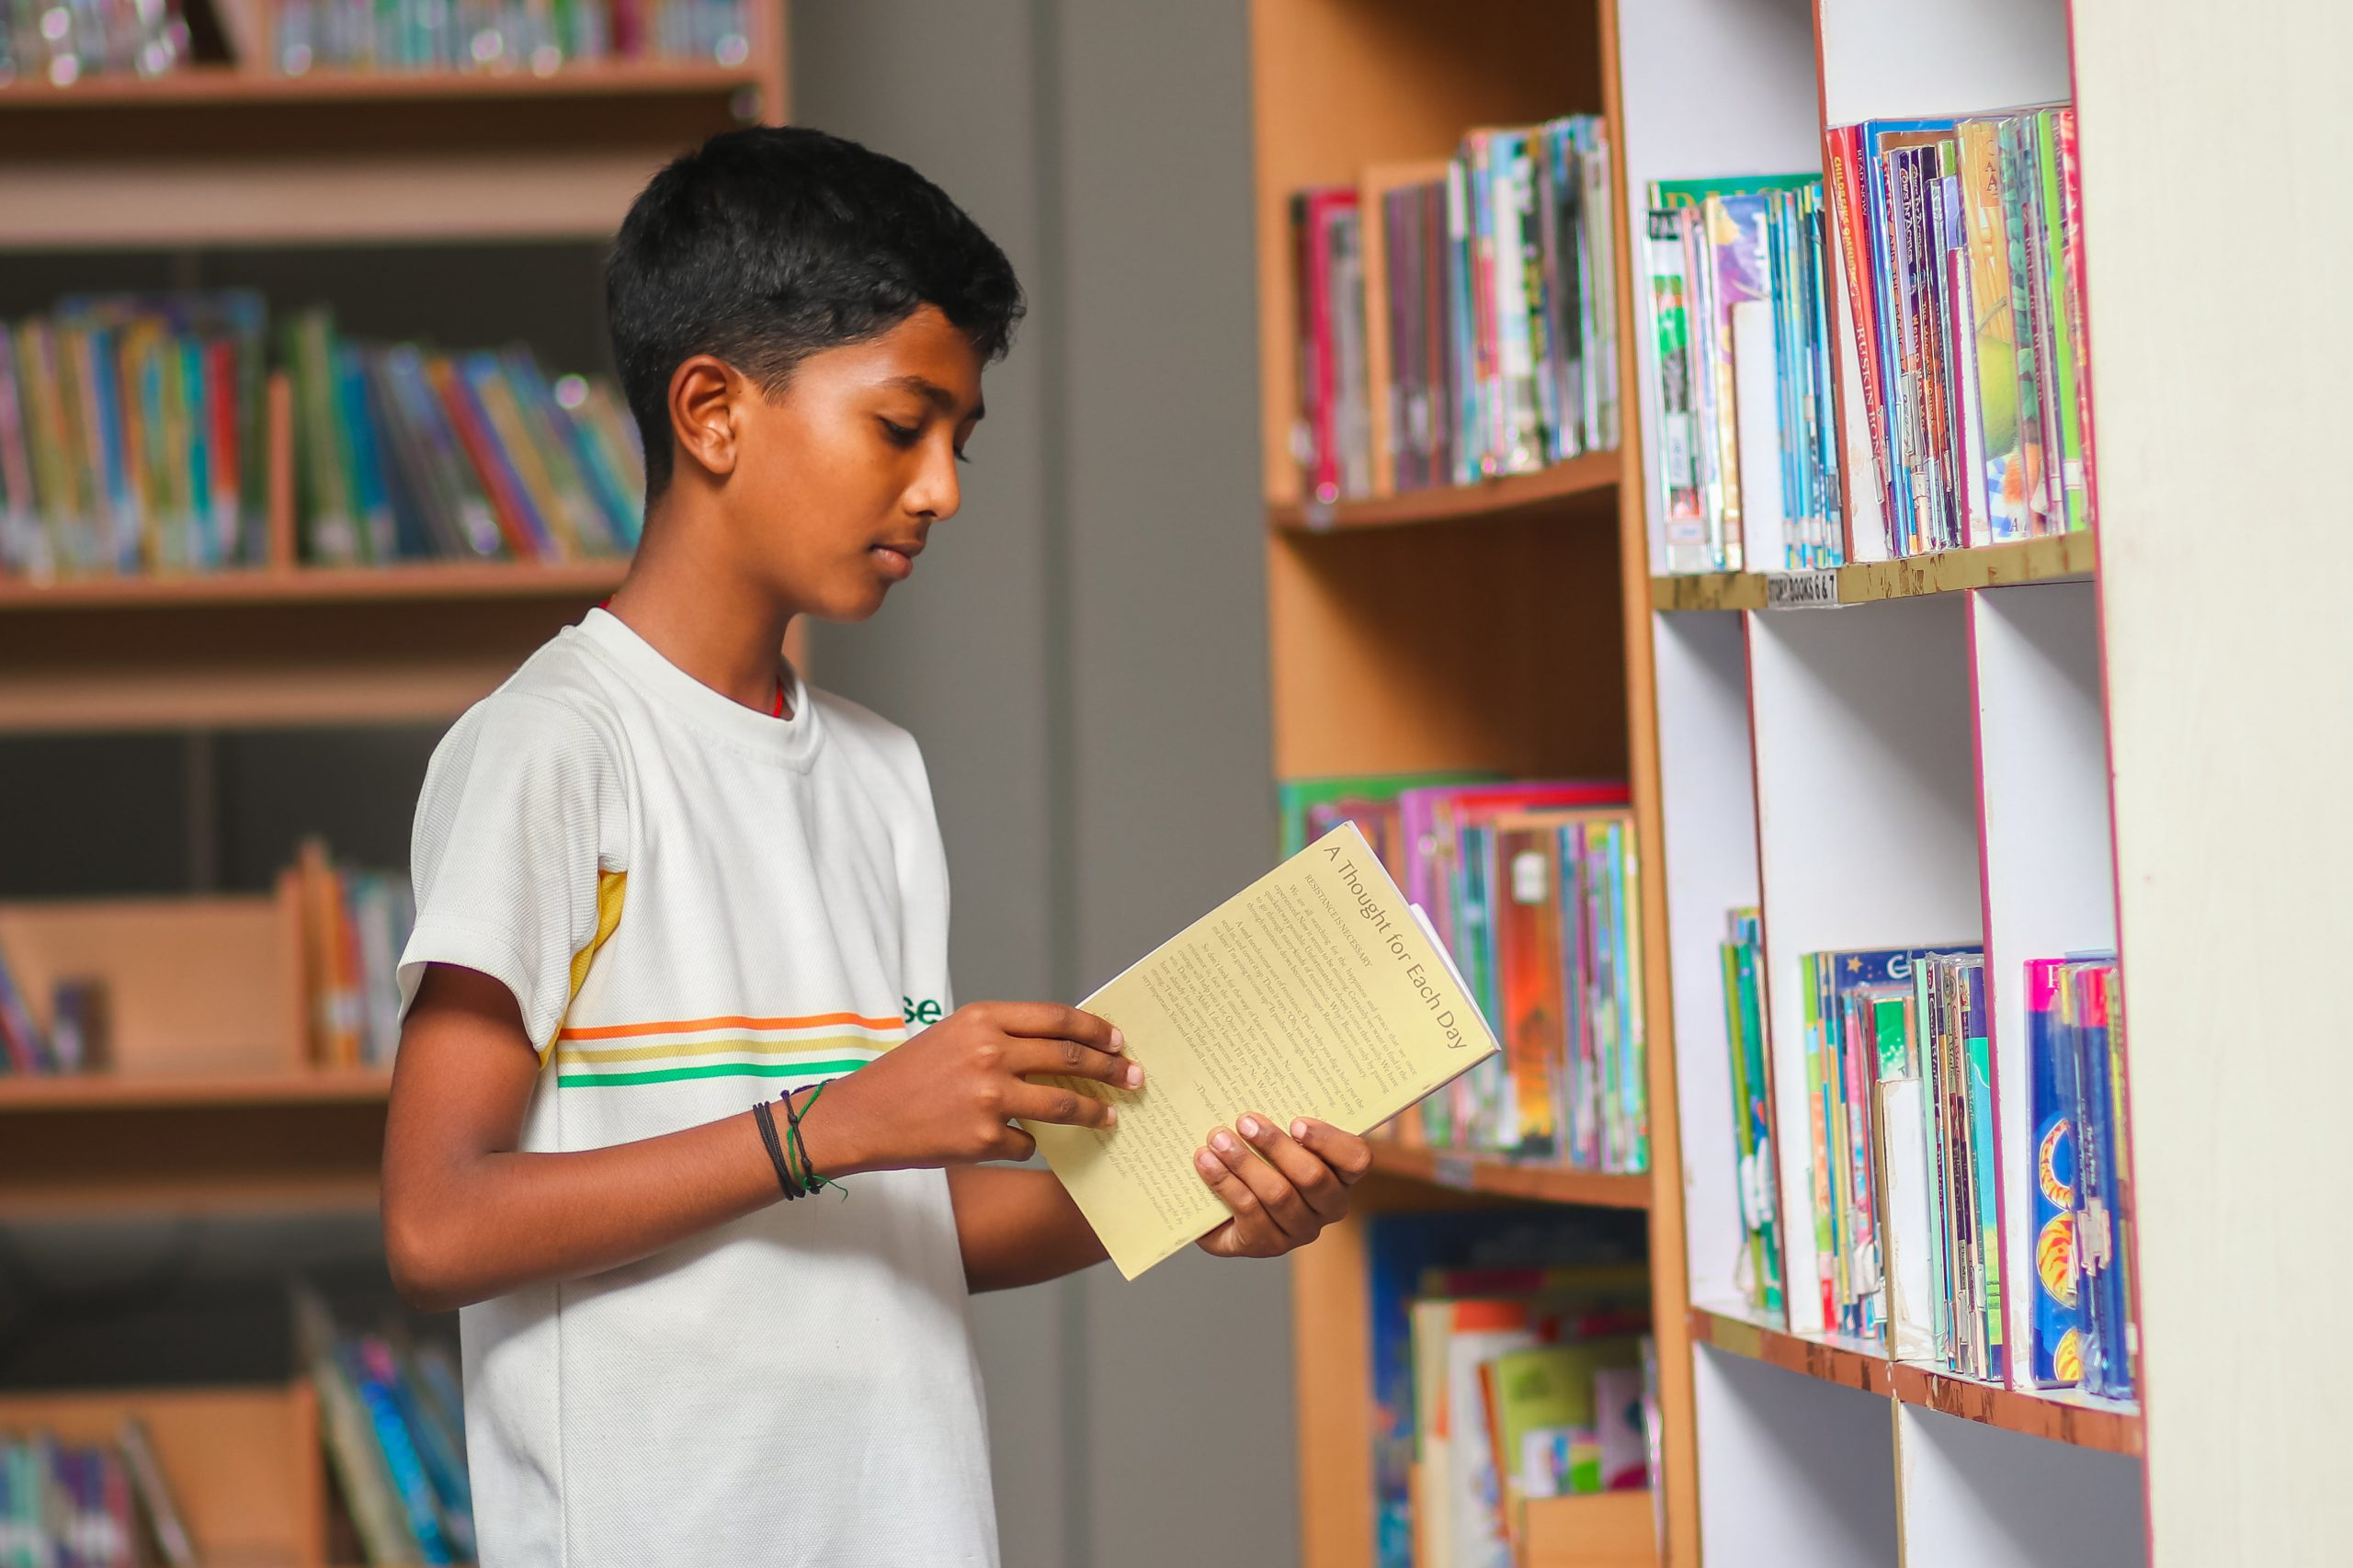 Learning moment at Library